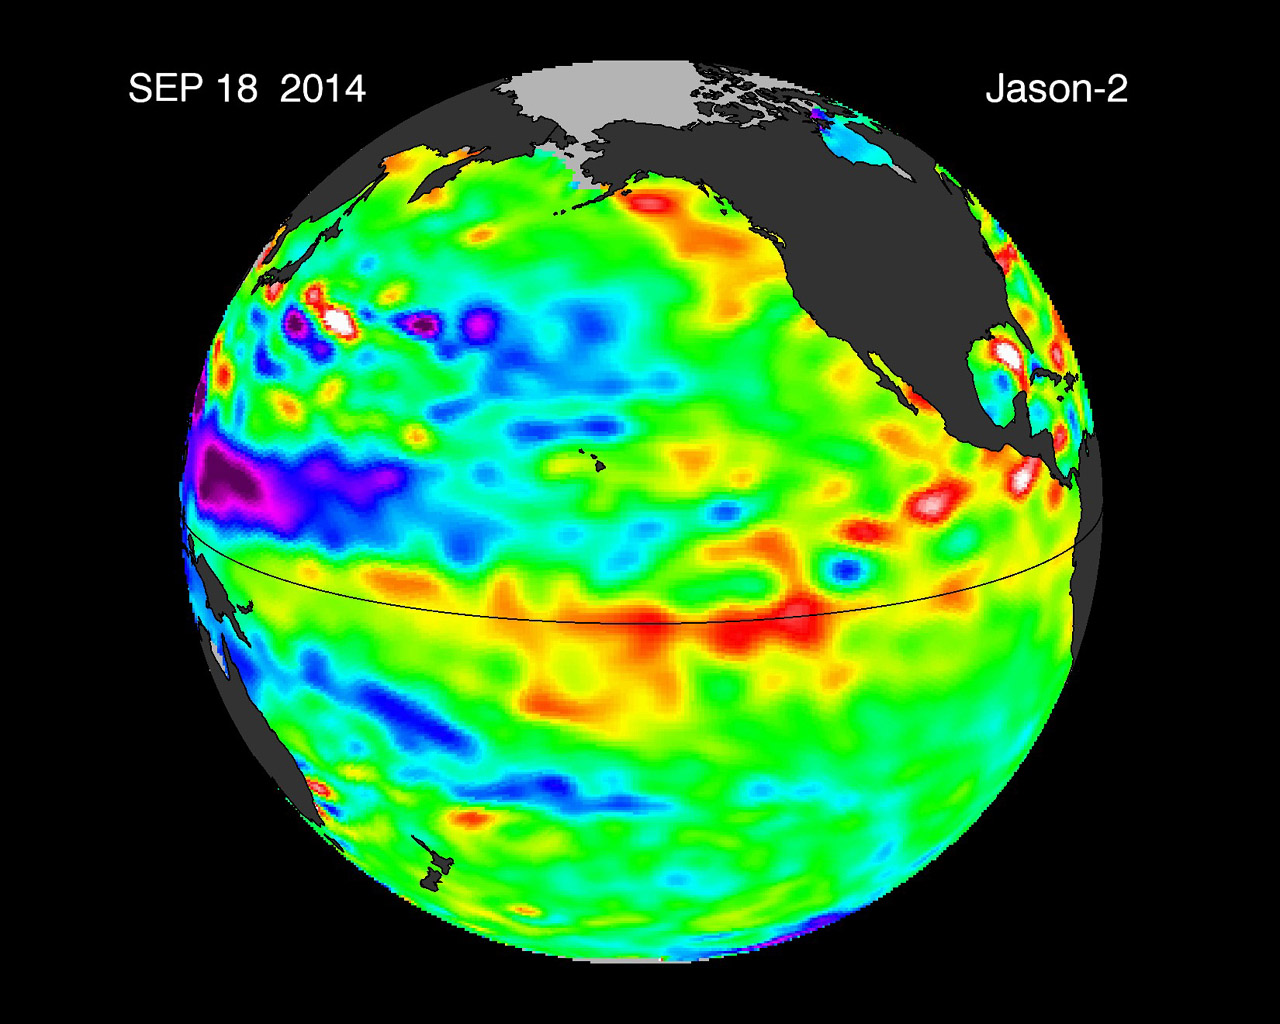 This image from NASA's European Jason-2 satellite shows Kelvin waves of high sea level (red/yellow) crossing the Pacific Ocean at the equator. The waves can be related to El Niño events.